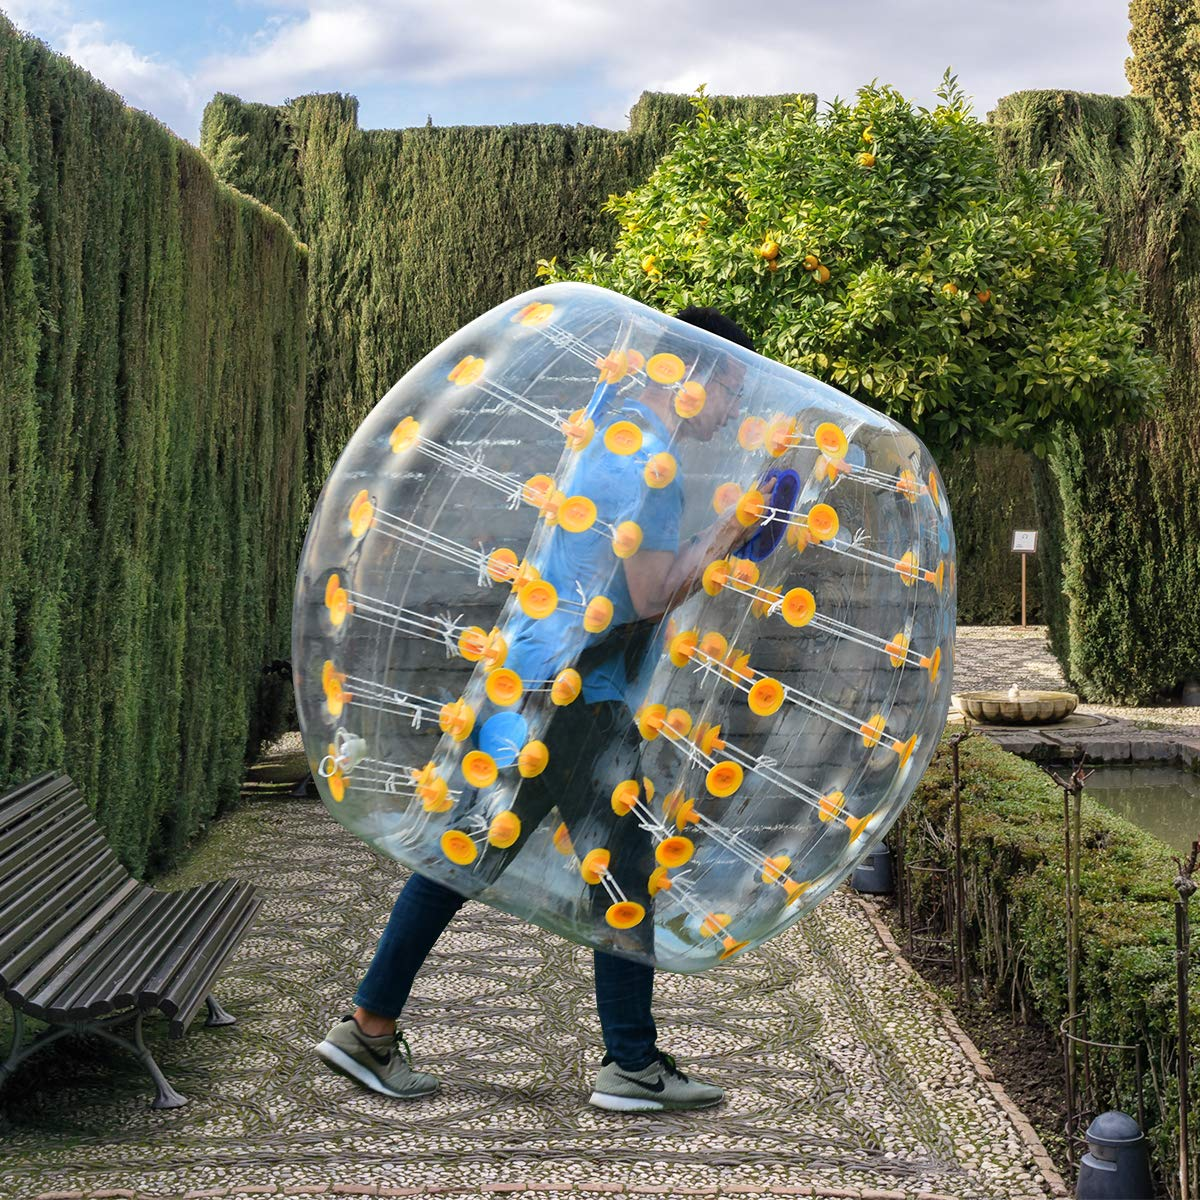 Costzon Inflatable Bumper Soccer Ball, Dia 5ft (1.5m) Giant Human Hamster Bubble Ball, 8mm Thickness Transparent PVC Zorb Ball for Kids, Teens Outdoor Team Gaming Play (Yellow)